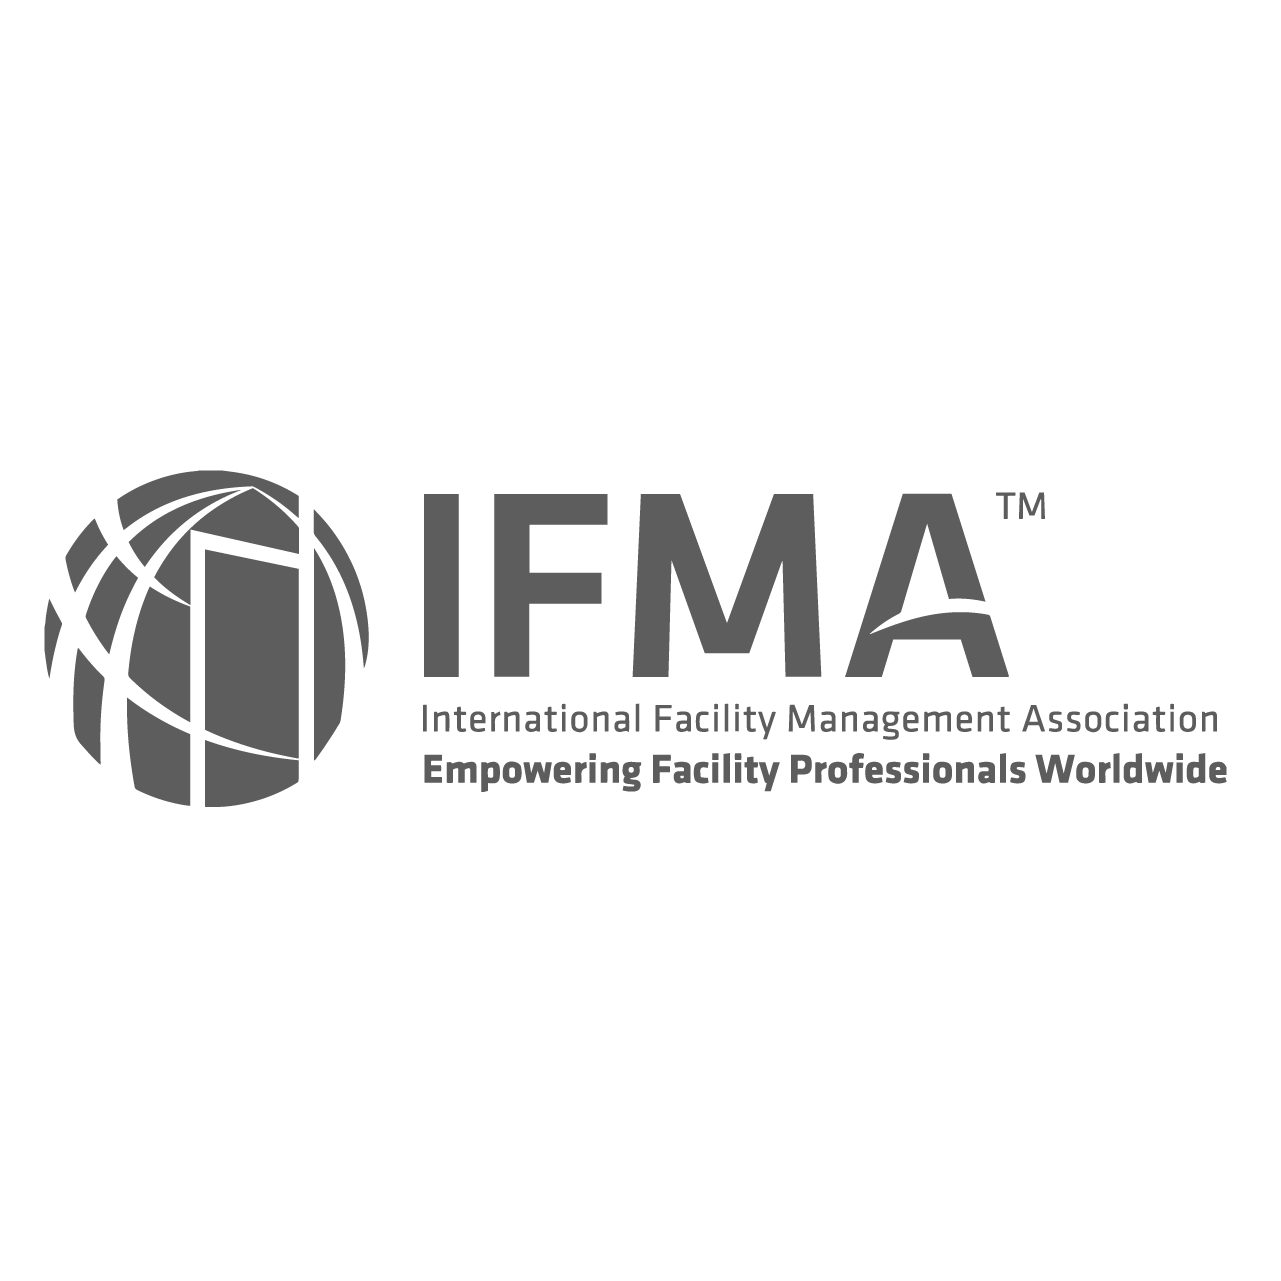 International Facility Management Association LOGO